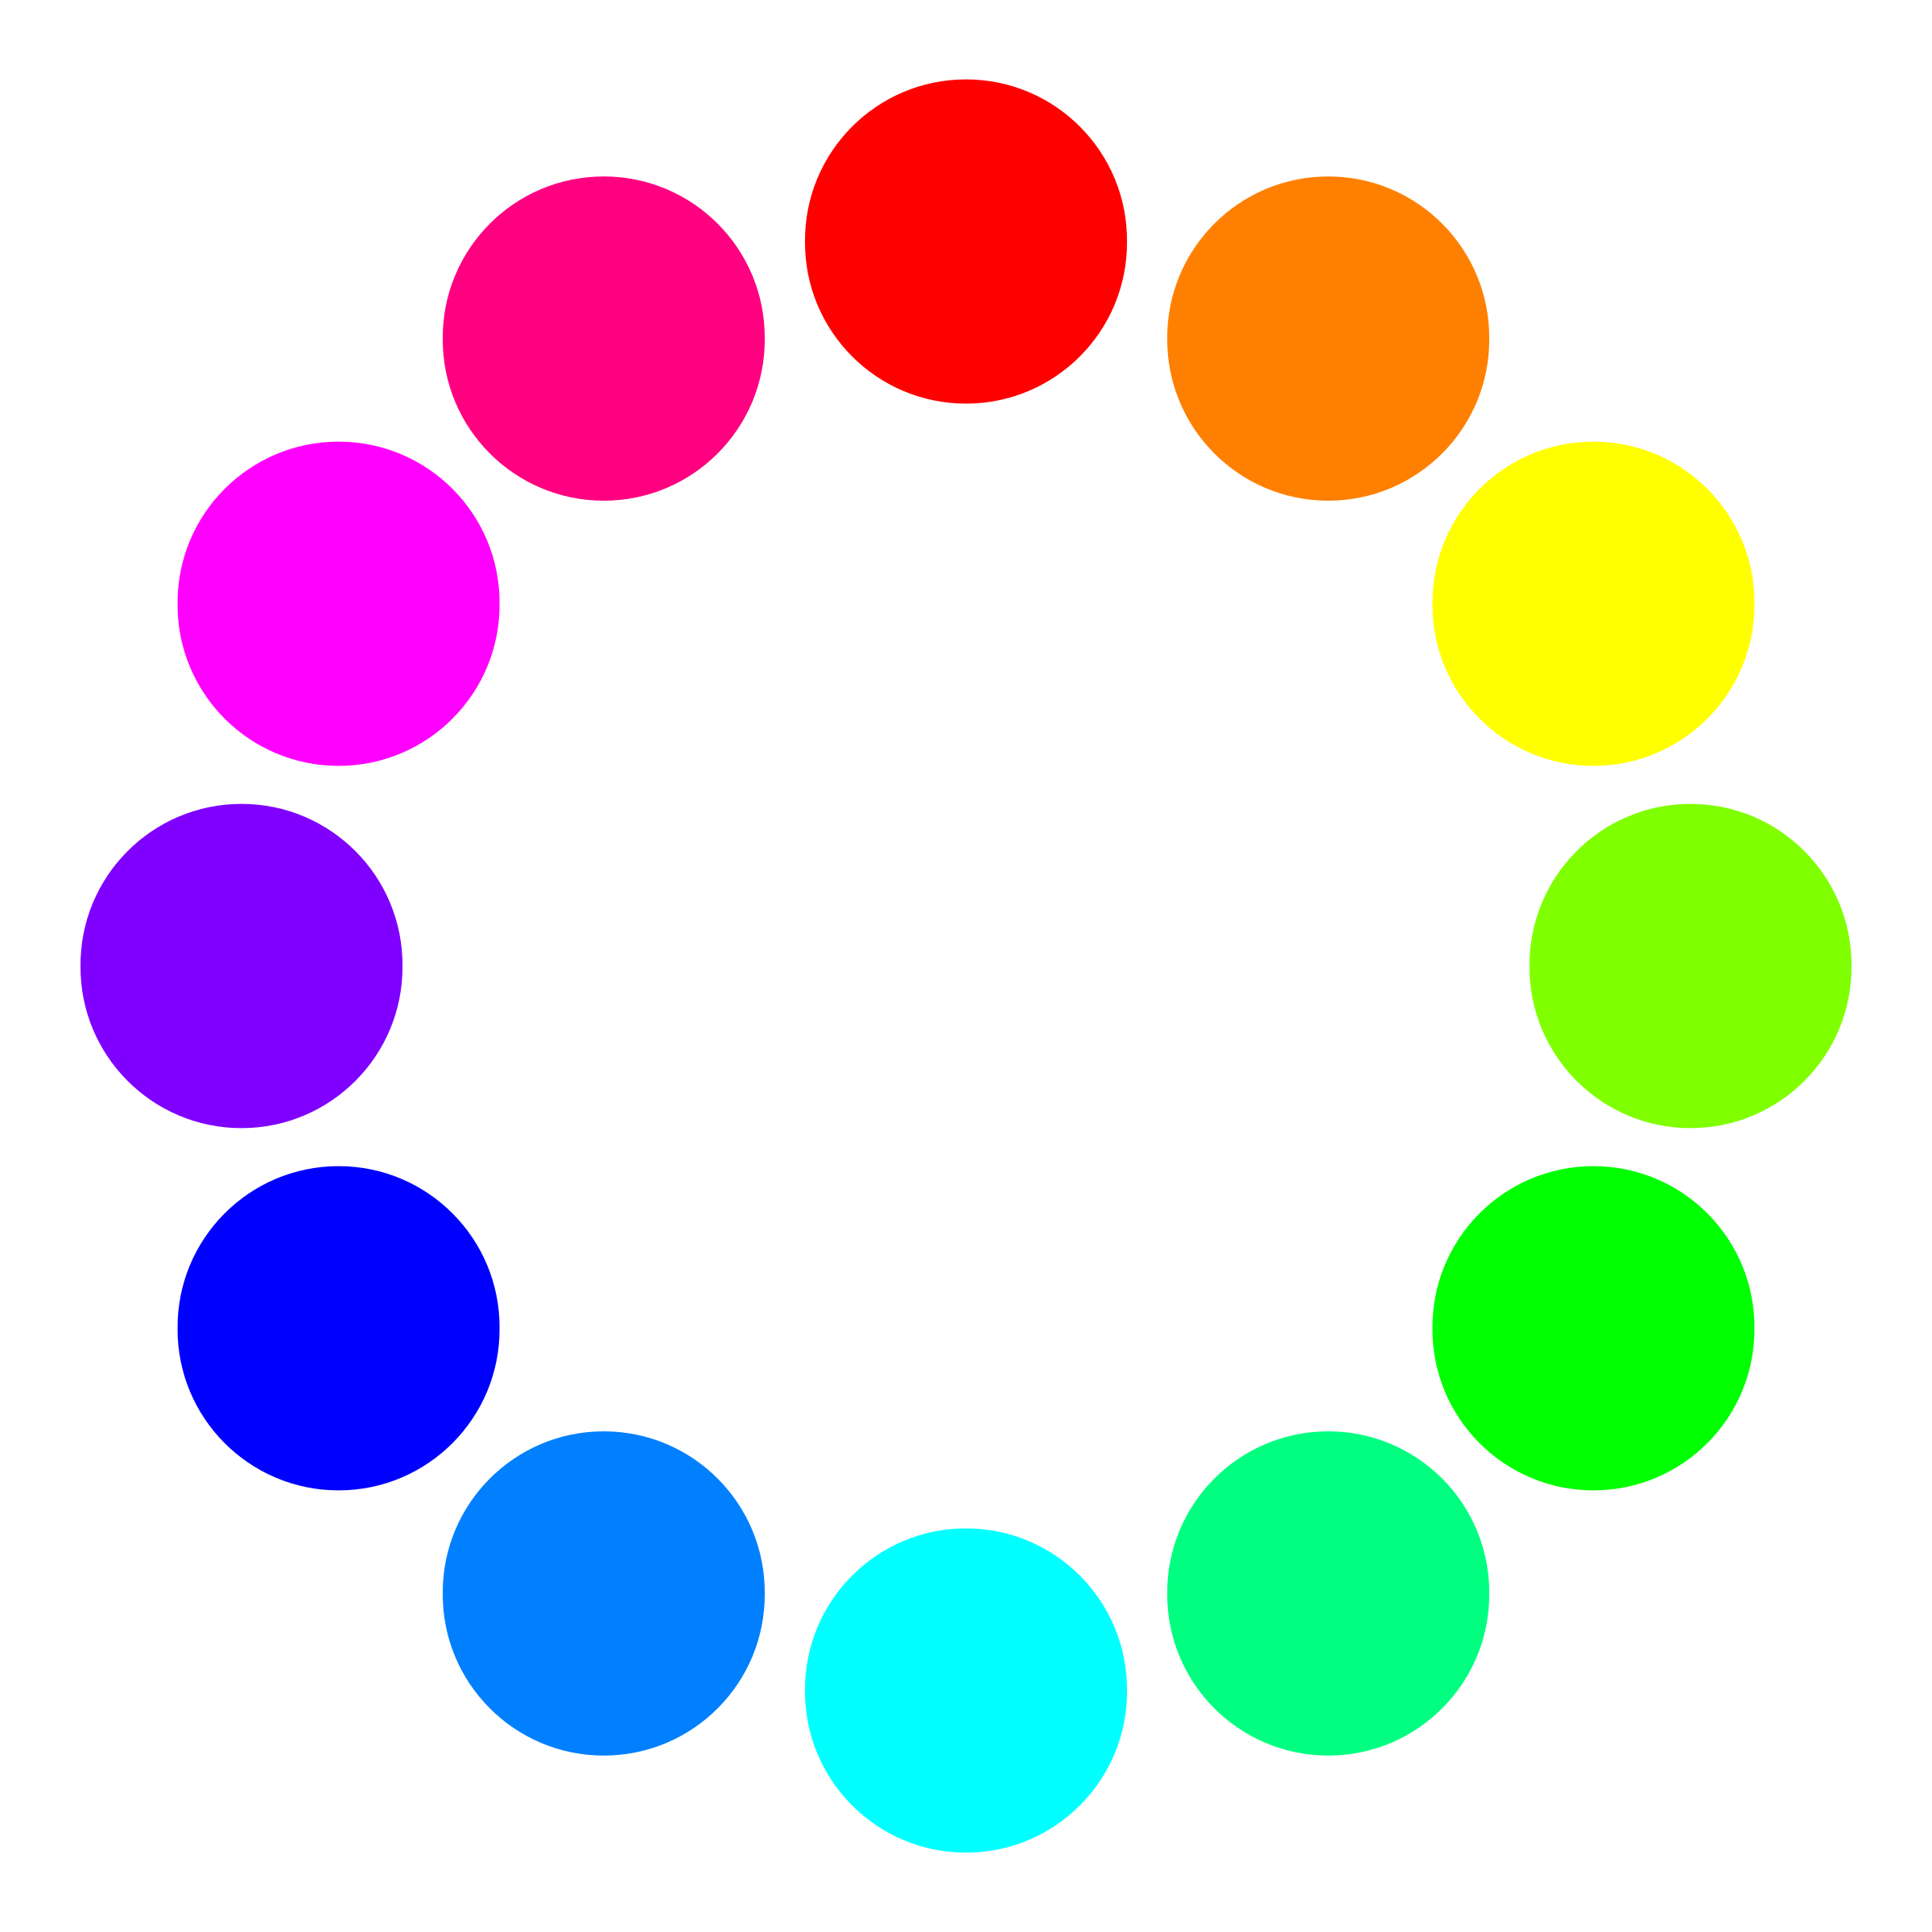 Colors clipart grey. Search for color drawing